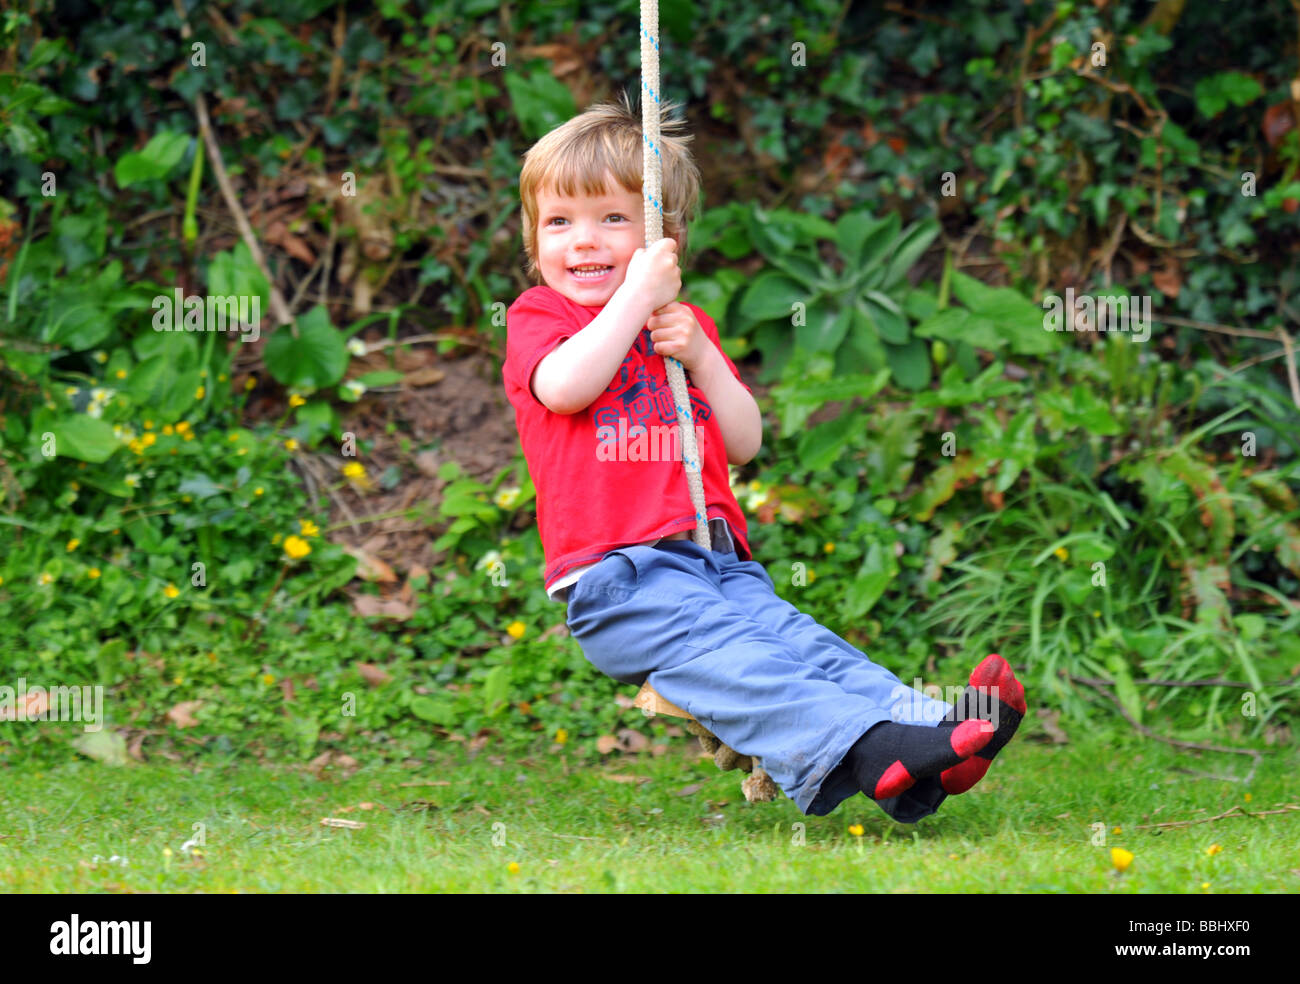 Boy on a rope swing, enfant balançant sur une corde Photo Stock